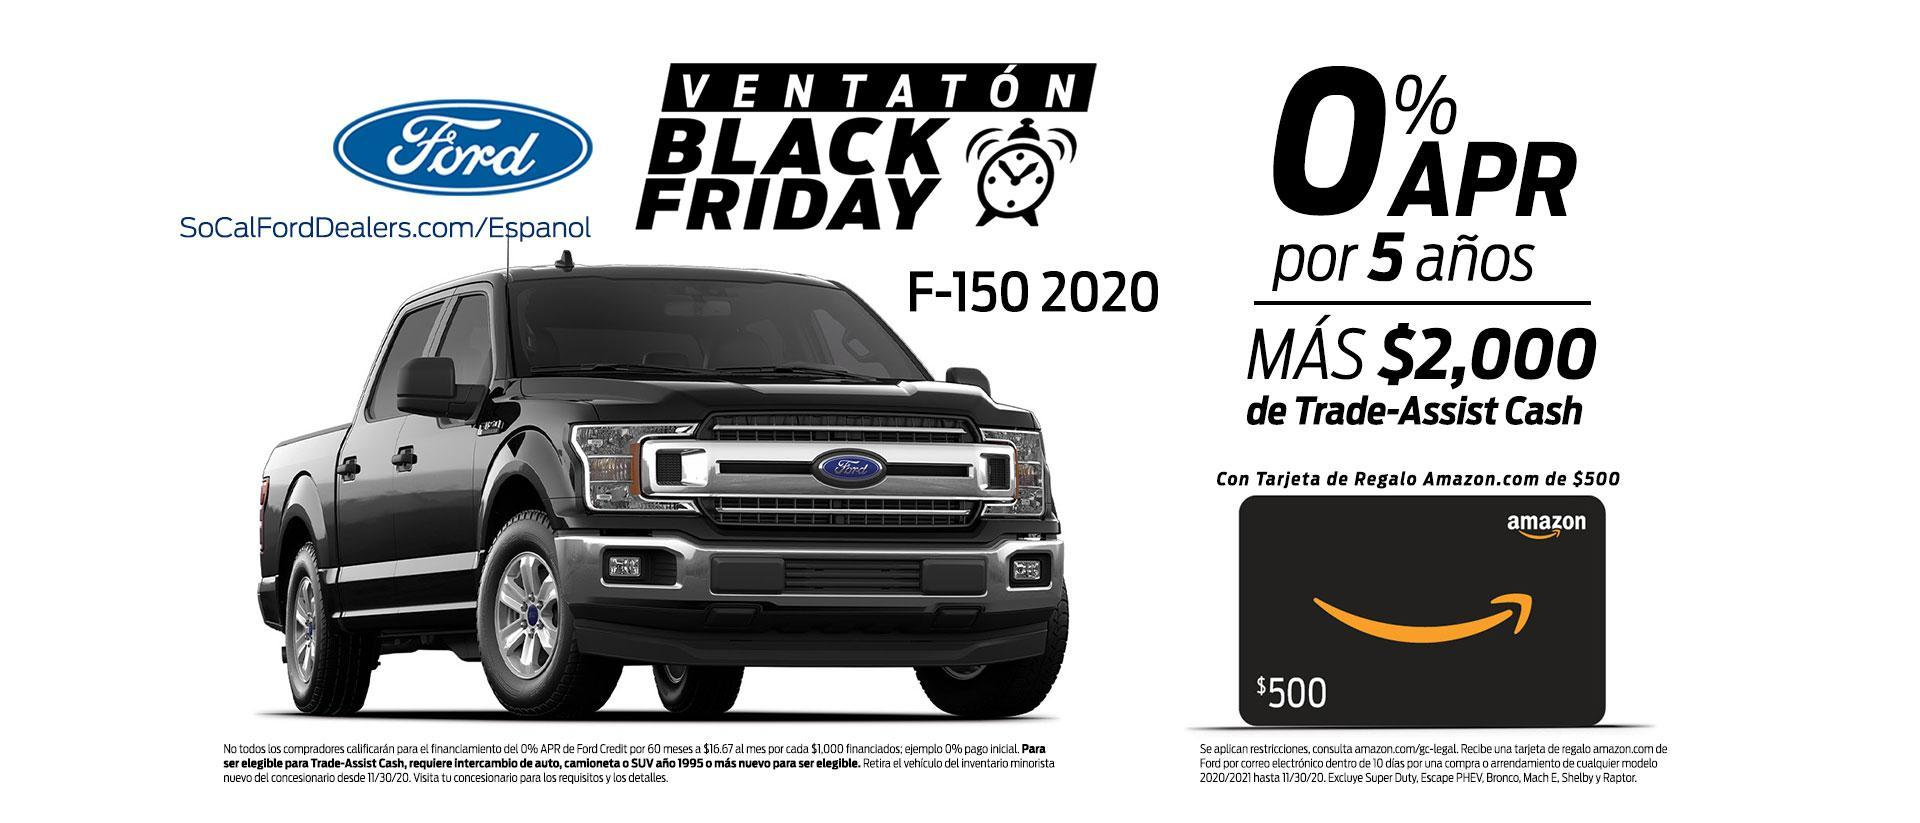 F-150 Black Friday